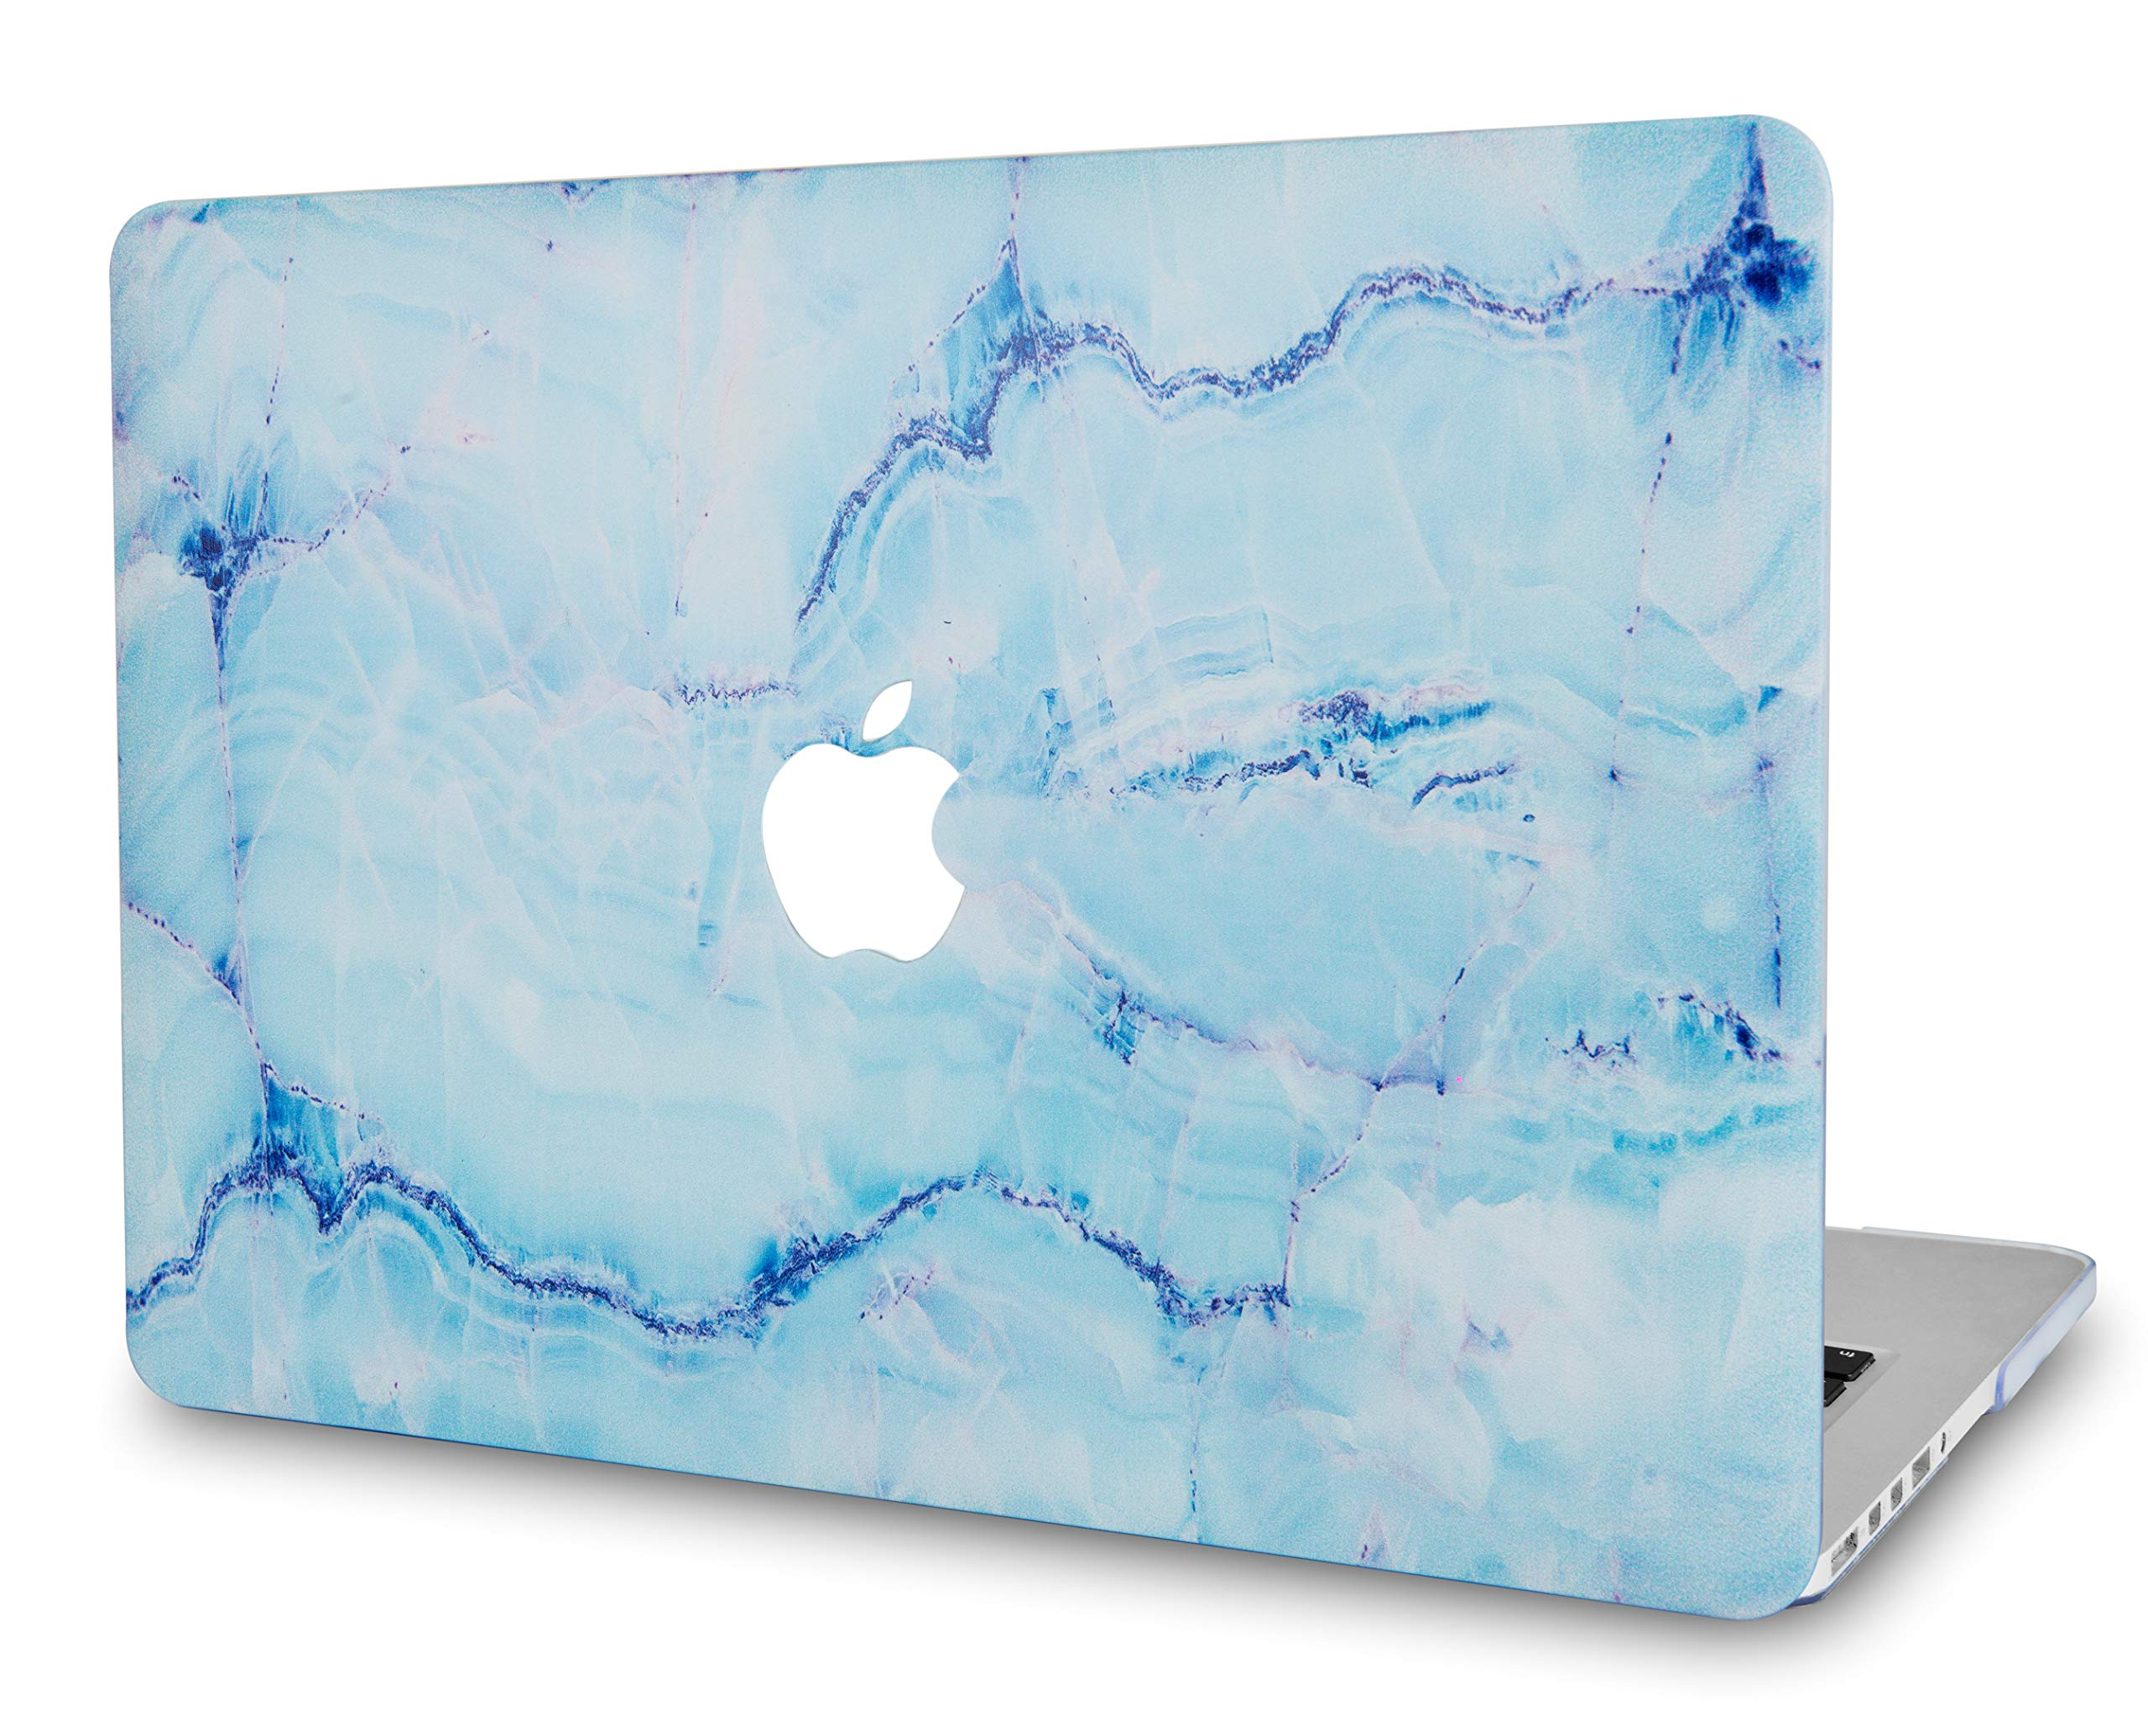 LuvCaseLaptopCaseforMacBookAir 13 Inch A1466 / A1369 (No Touch ID)RubberizedPlasticHardShellCover (Blue Marble with Blue Veins)